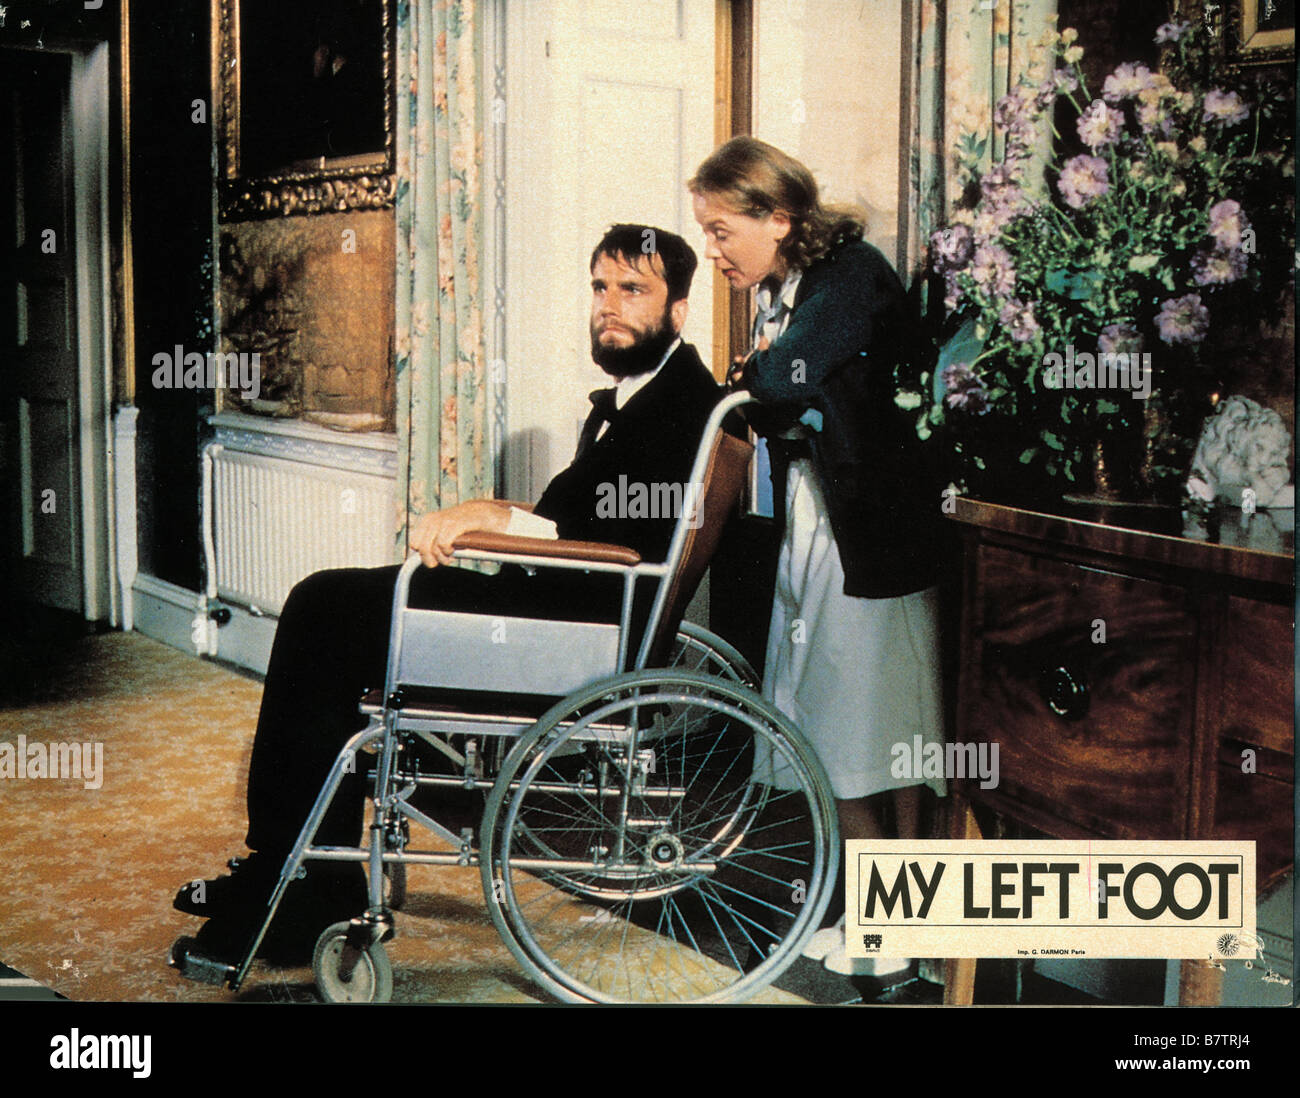 My Left Foot The Story Of Christy Brown Year 1989 Ireland Uk Daniel Day Lewis Ruth Mccabe Director Jim Sheridan